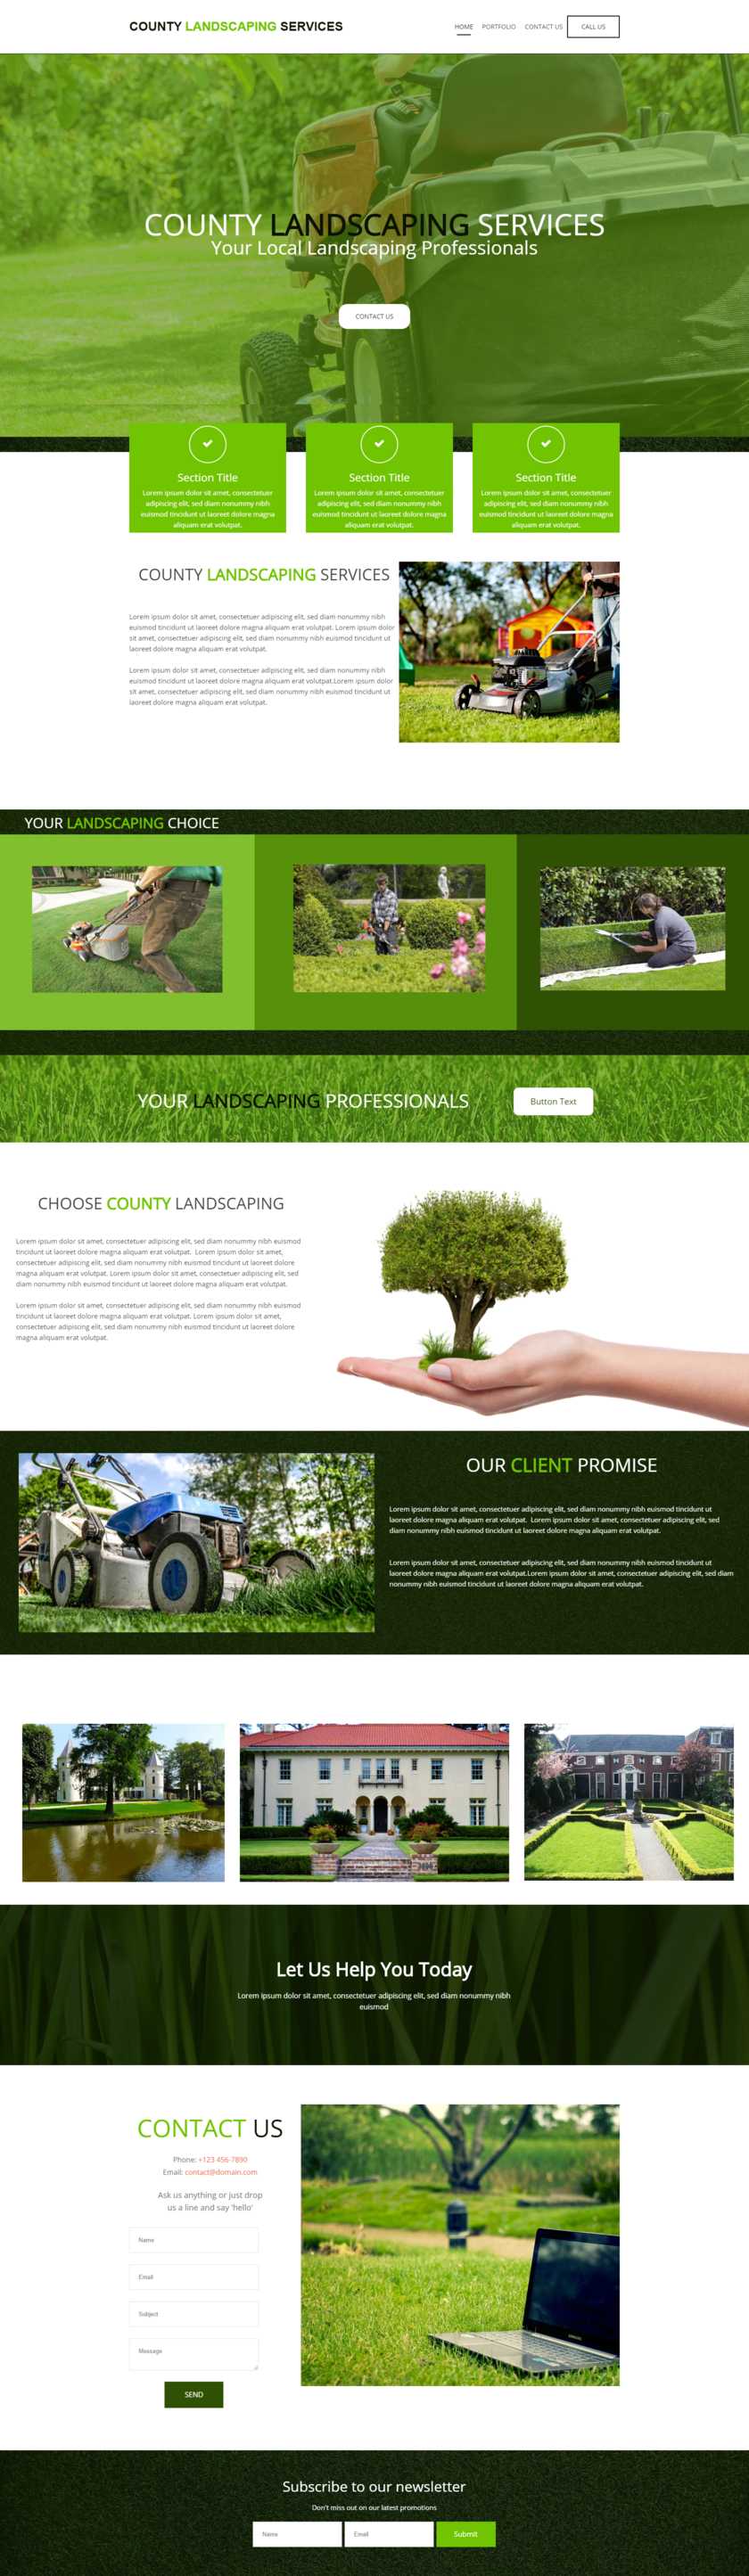 Landscaping Website Design Idea This Landscaper Business Website Template Is Availab Business Website Templates Web Template Design Website Design Inspiration